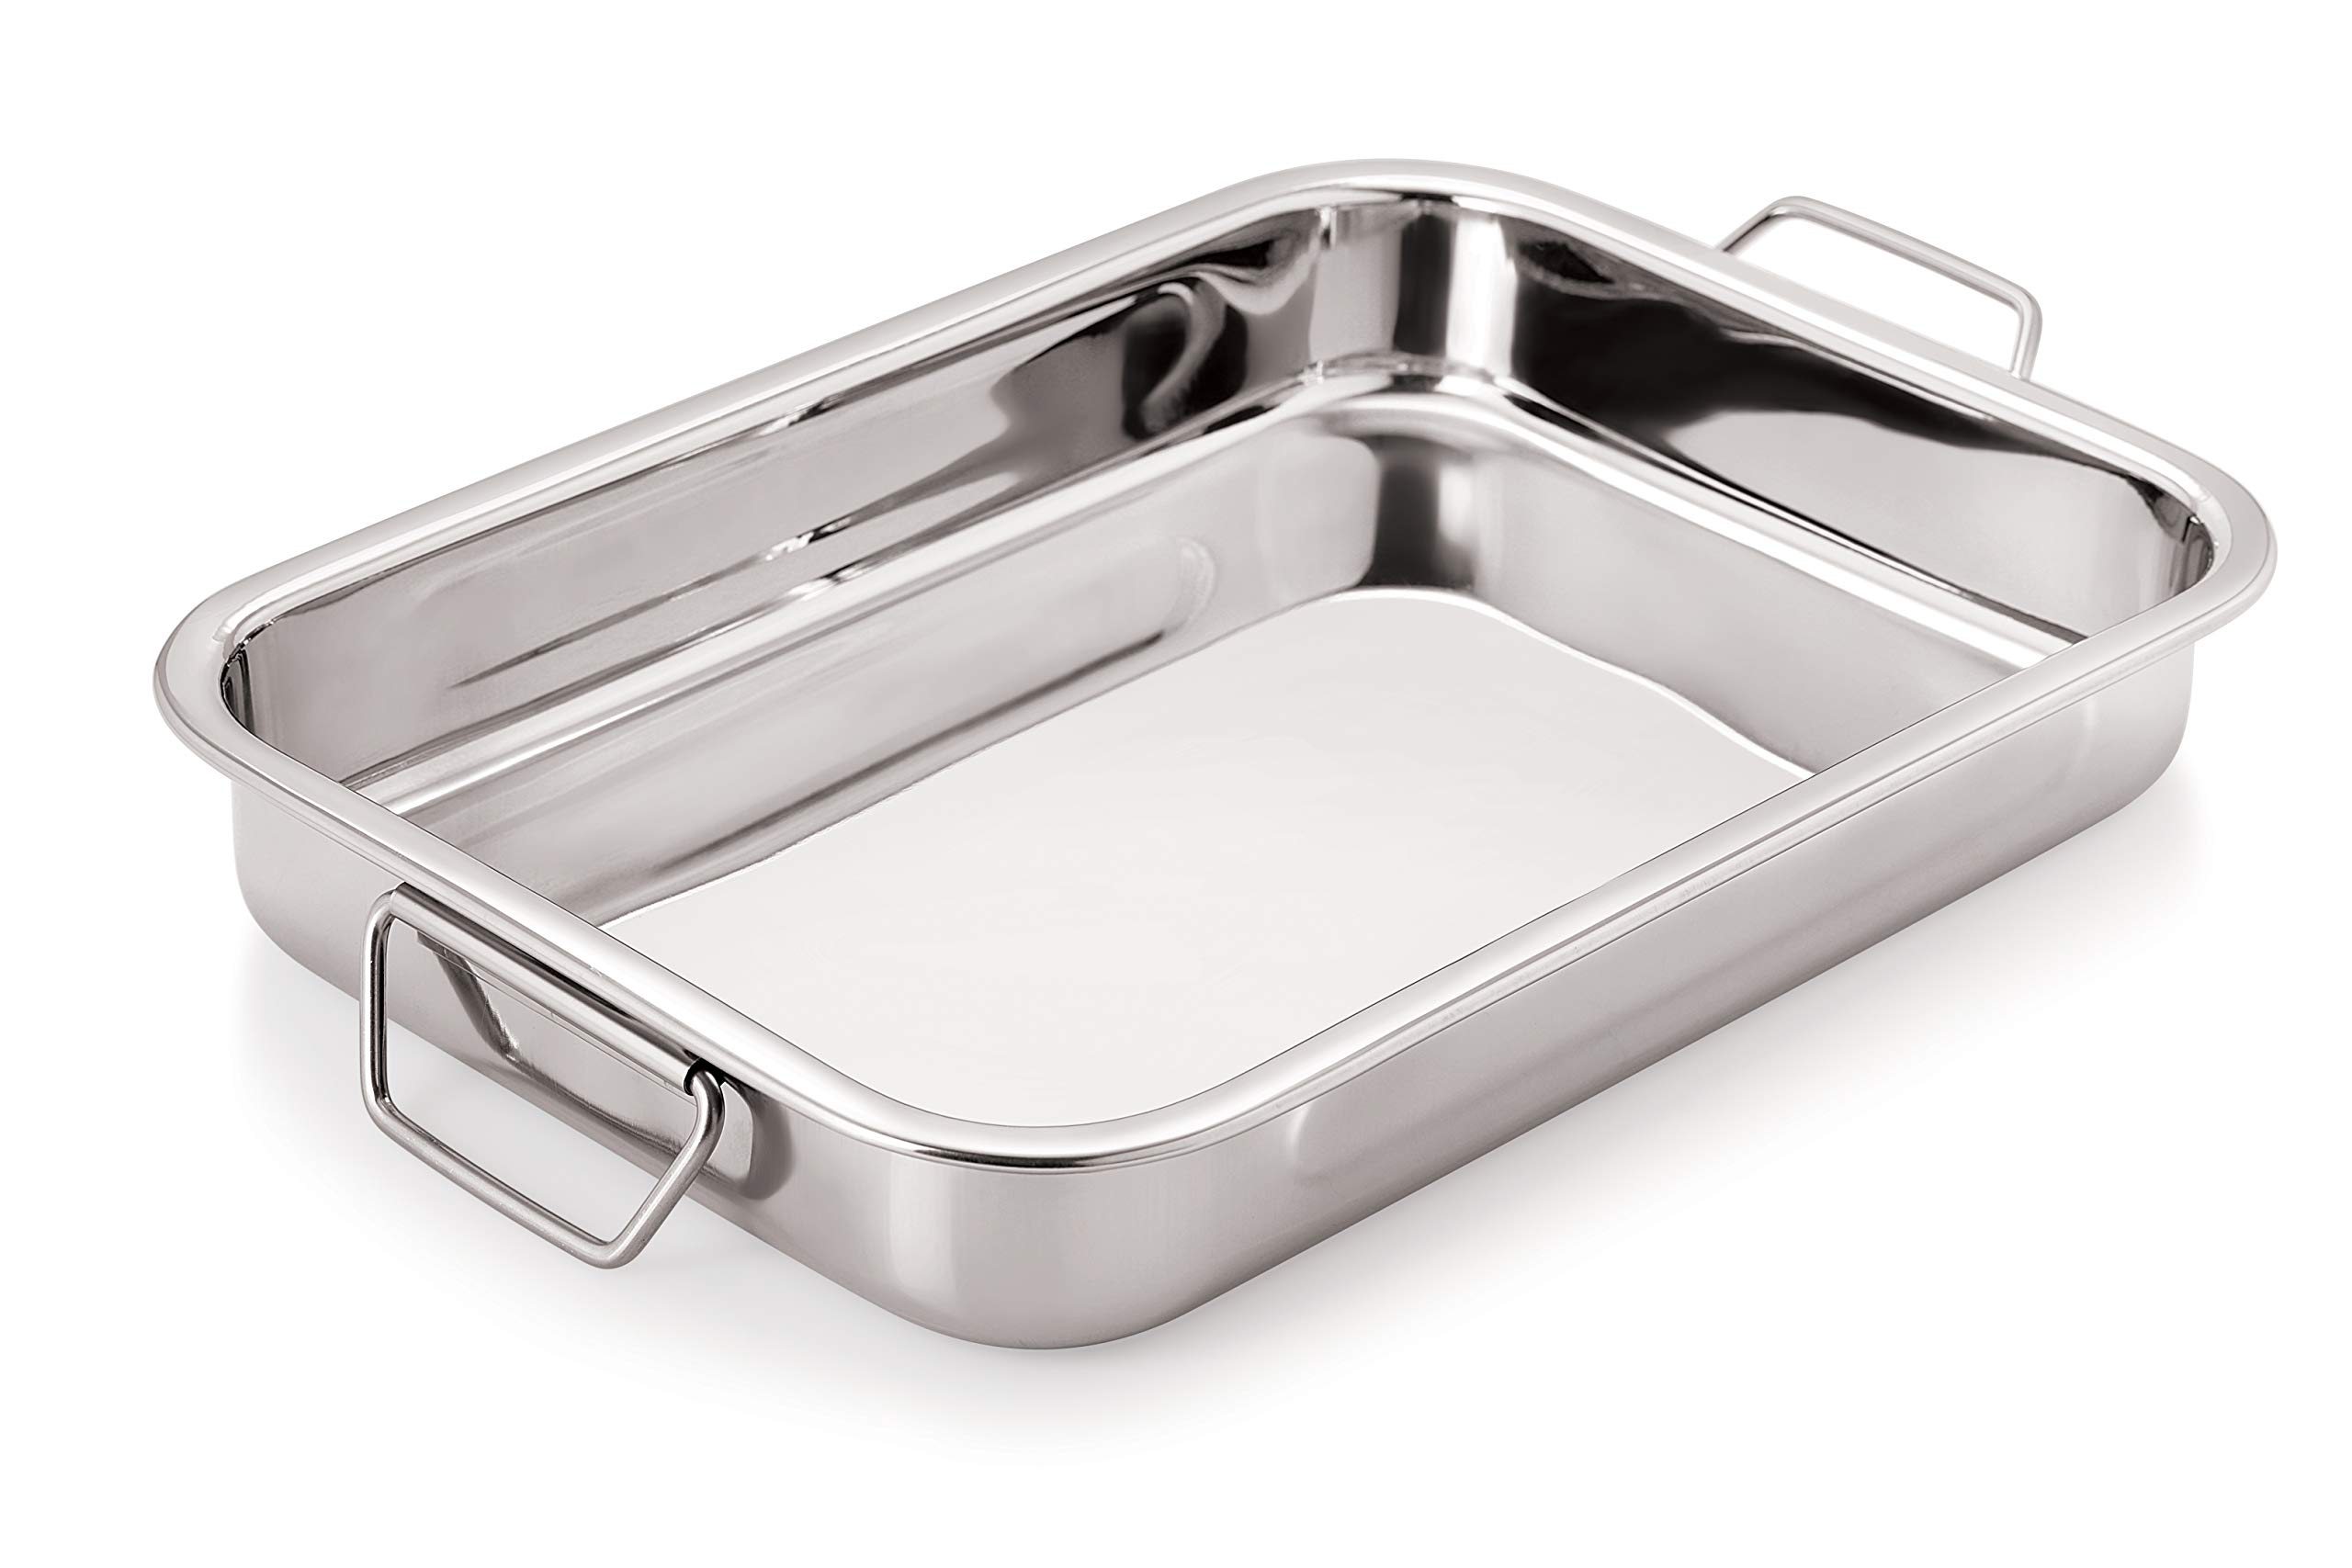 Chef Direct Stainless Steel Roast Pan with Folding Handles // Rectangular Lasagna Pan for Baking, Roasting, Grilling, OTG Oven Safe (Length 35cm X Width 24cm) by Chef Direct